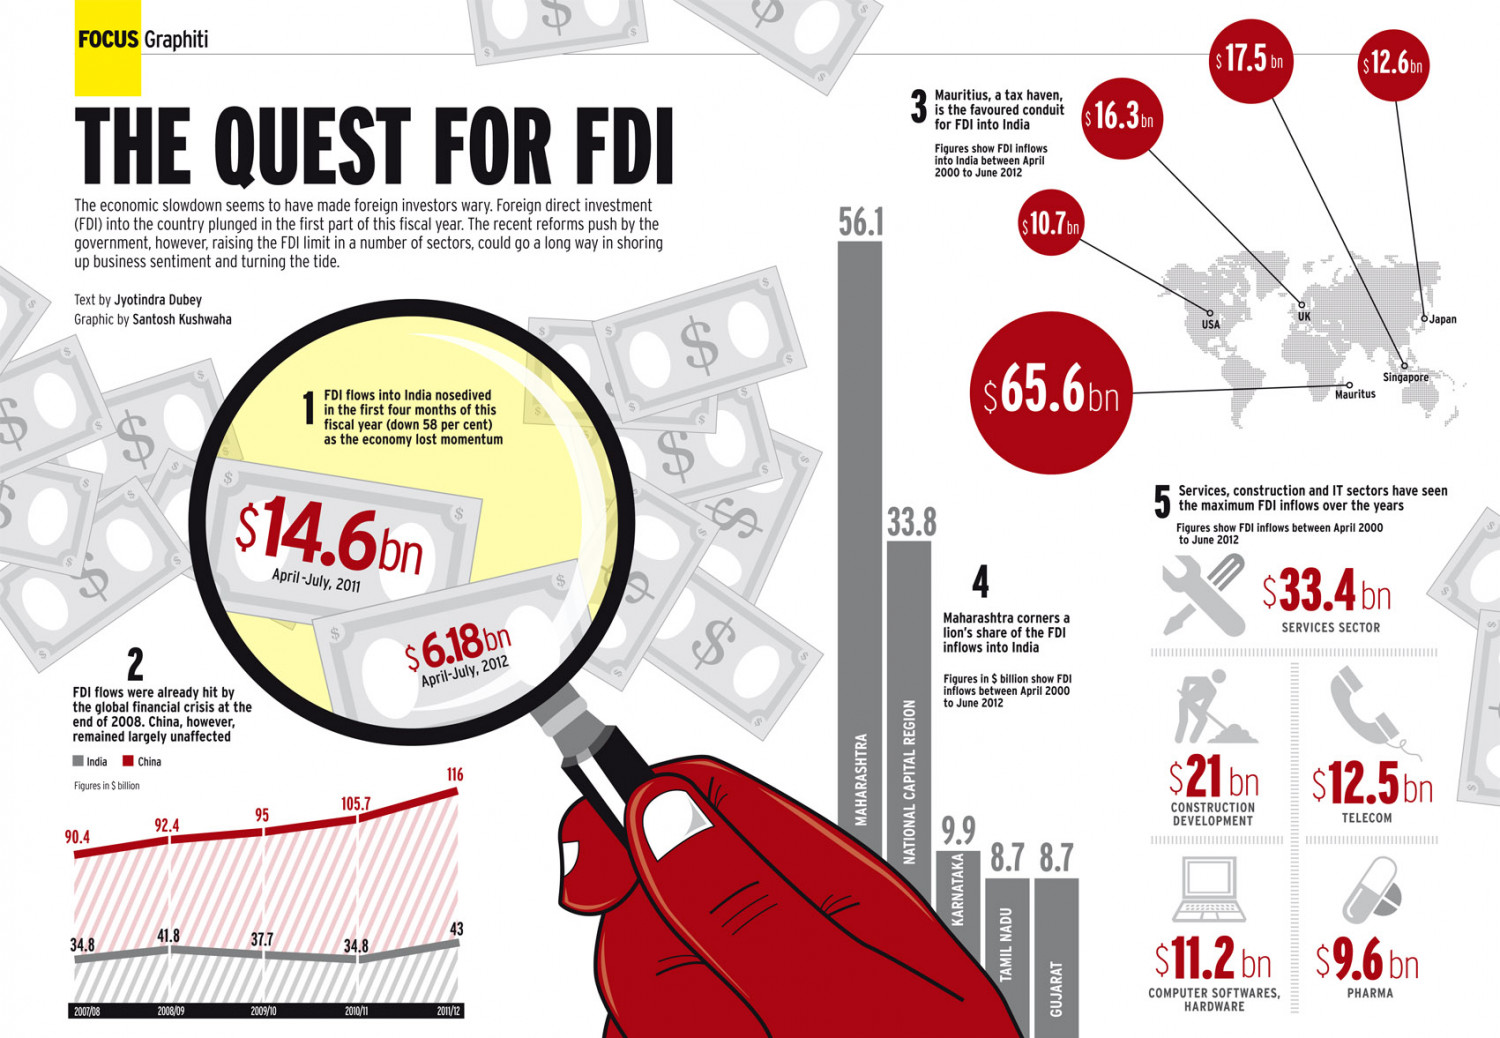 THE QUEST FOR FDI Infographic